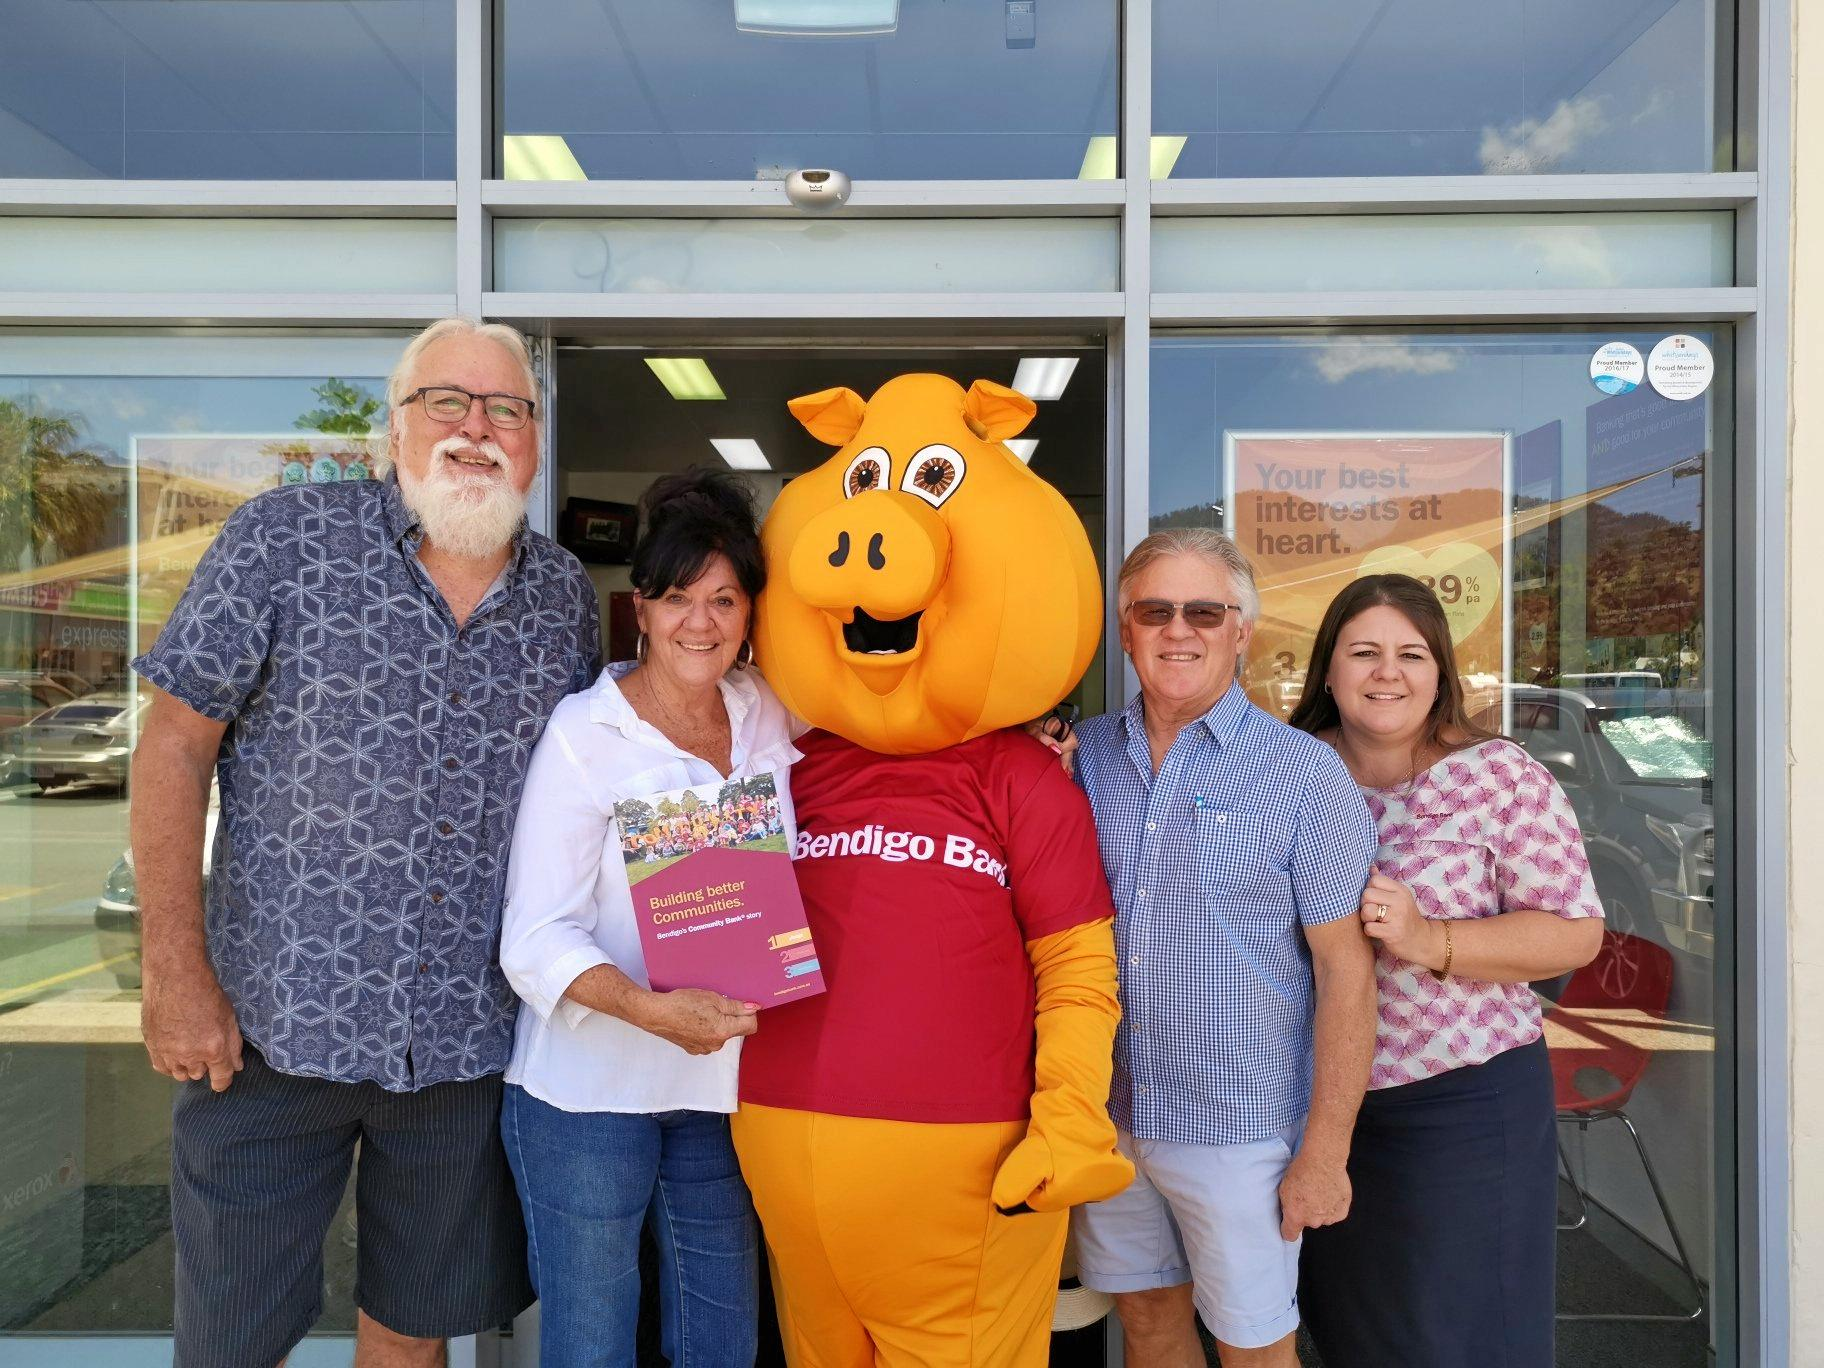 Whitsundays Arts Festival committee (from left) treasurer Tom Casey, president Cathy Knezevic with sponsor Bendigo Bank's mascot, Bendigo Bank chairman Mark Henry and branch manager Tiff Deakes.